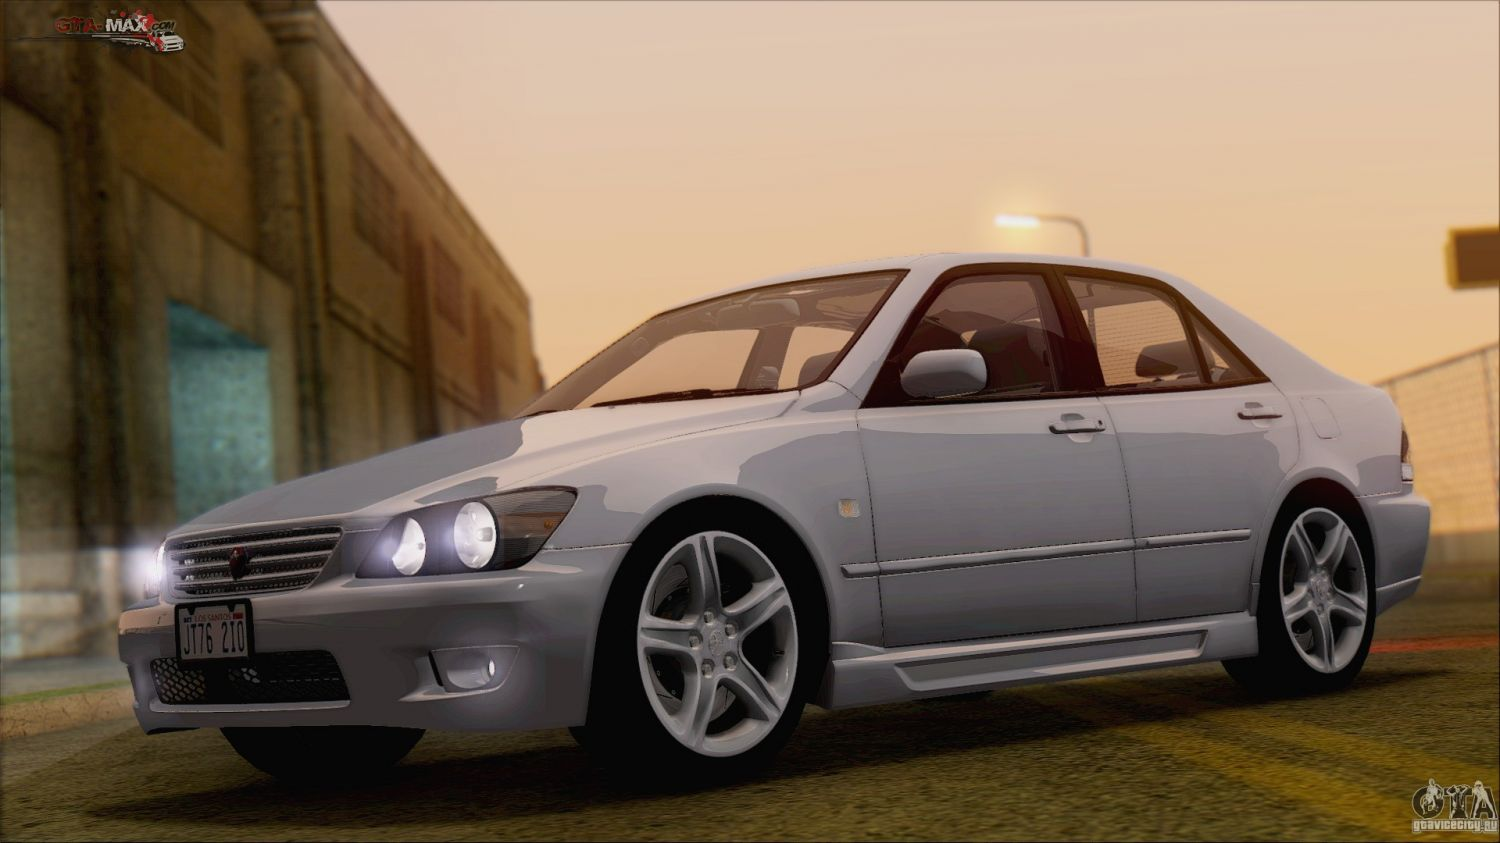 Toyota Altezza (RS200) 2004